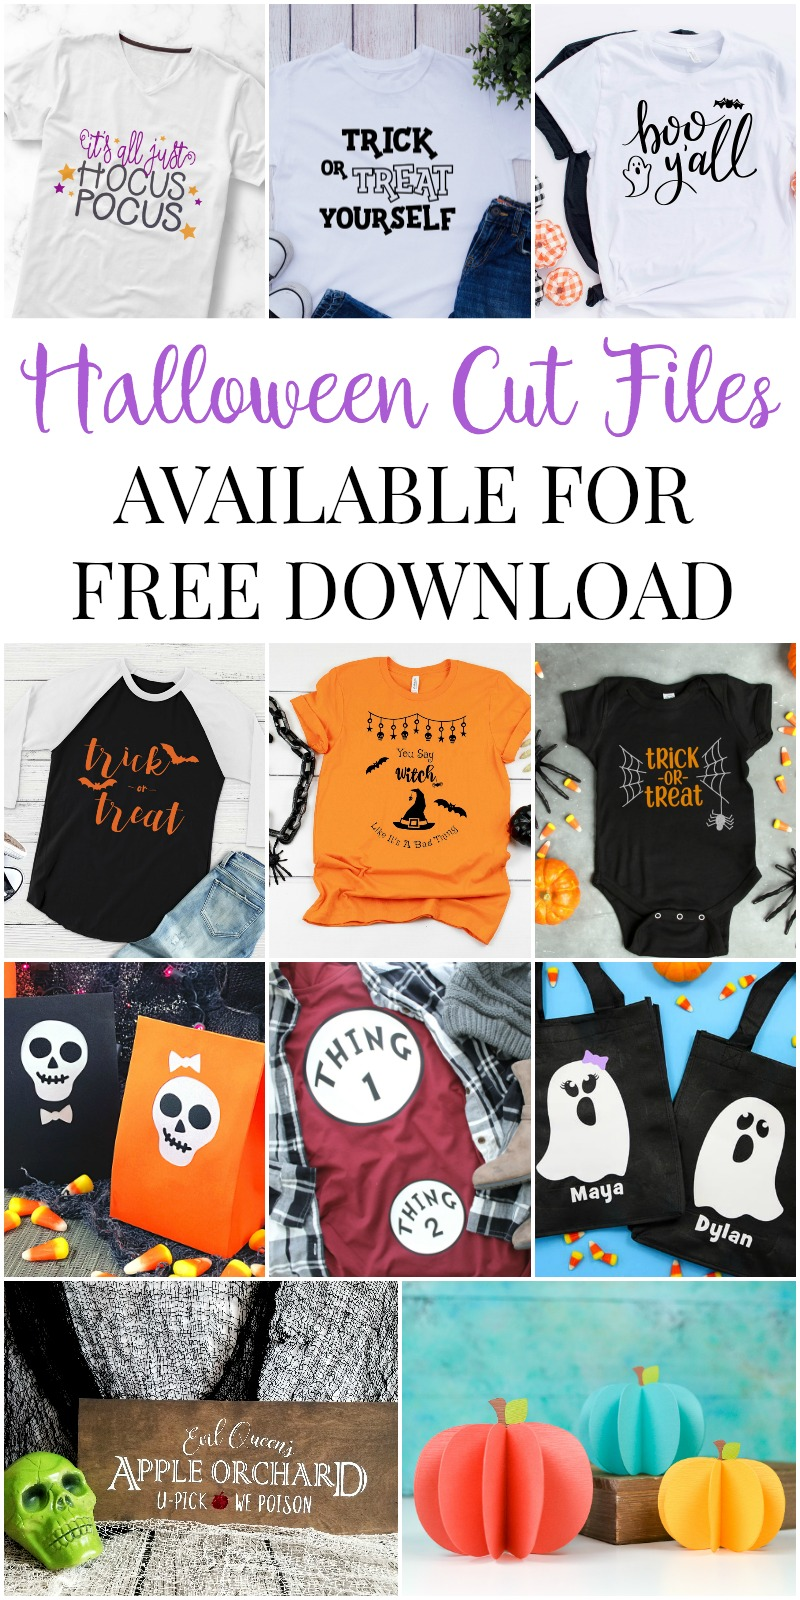 This Free Hocus Pocus SVG Cut File is great for Halloween decor or apparel, and can be used with Cricut, Silhouette, and other cutting machines!